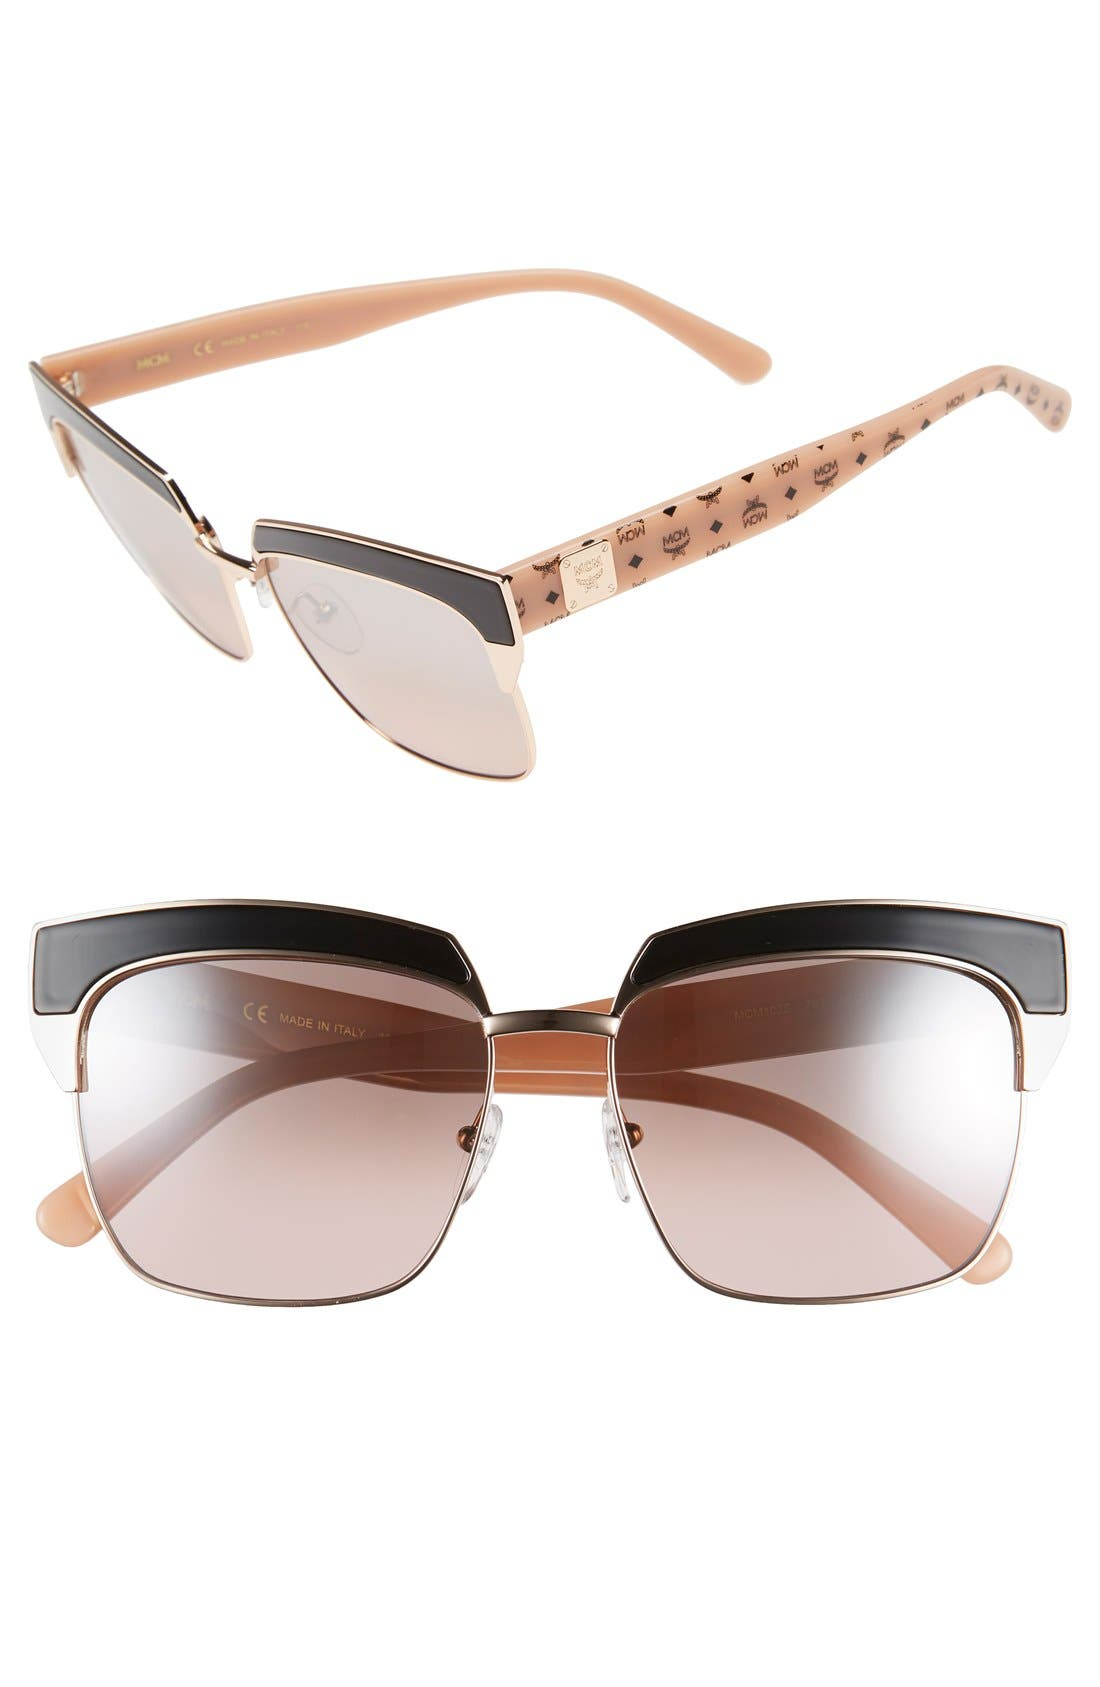 'Visetos' 56mm Retro Sunglasses,                             Main thumbnail 1, color,                             Shiny Rose Gold/ Nude Visetos